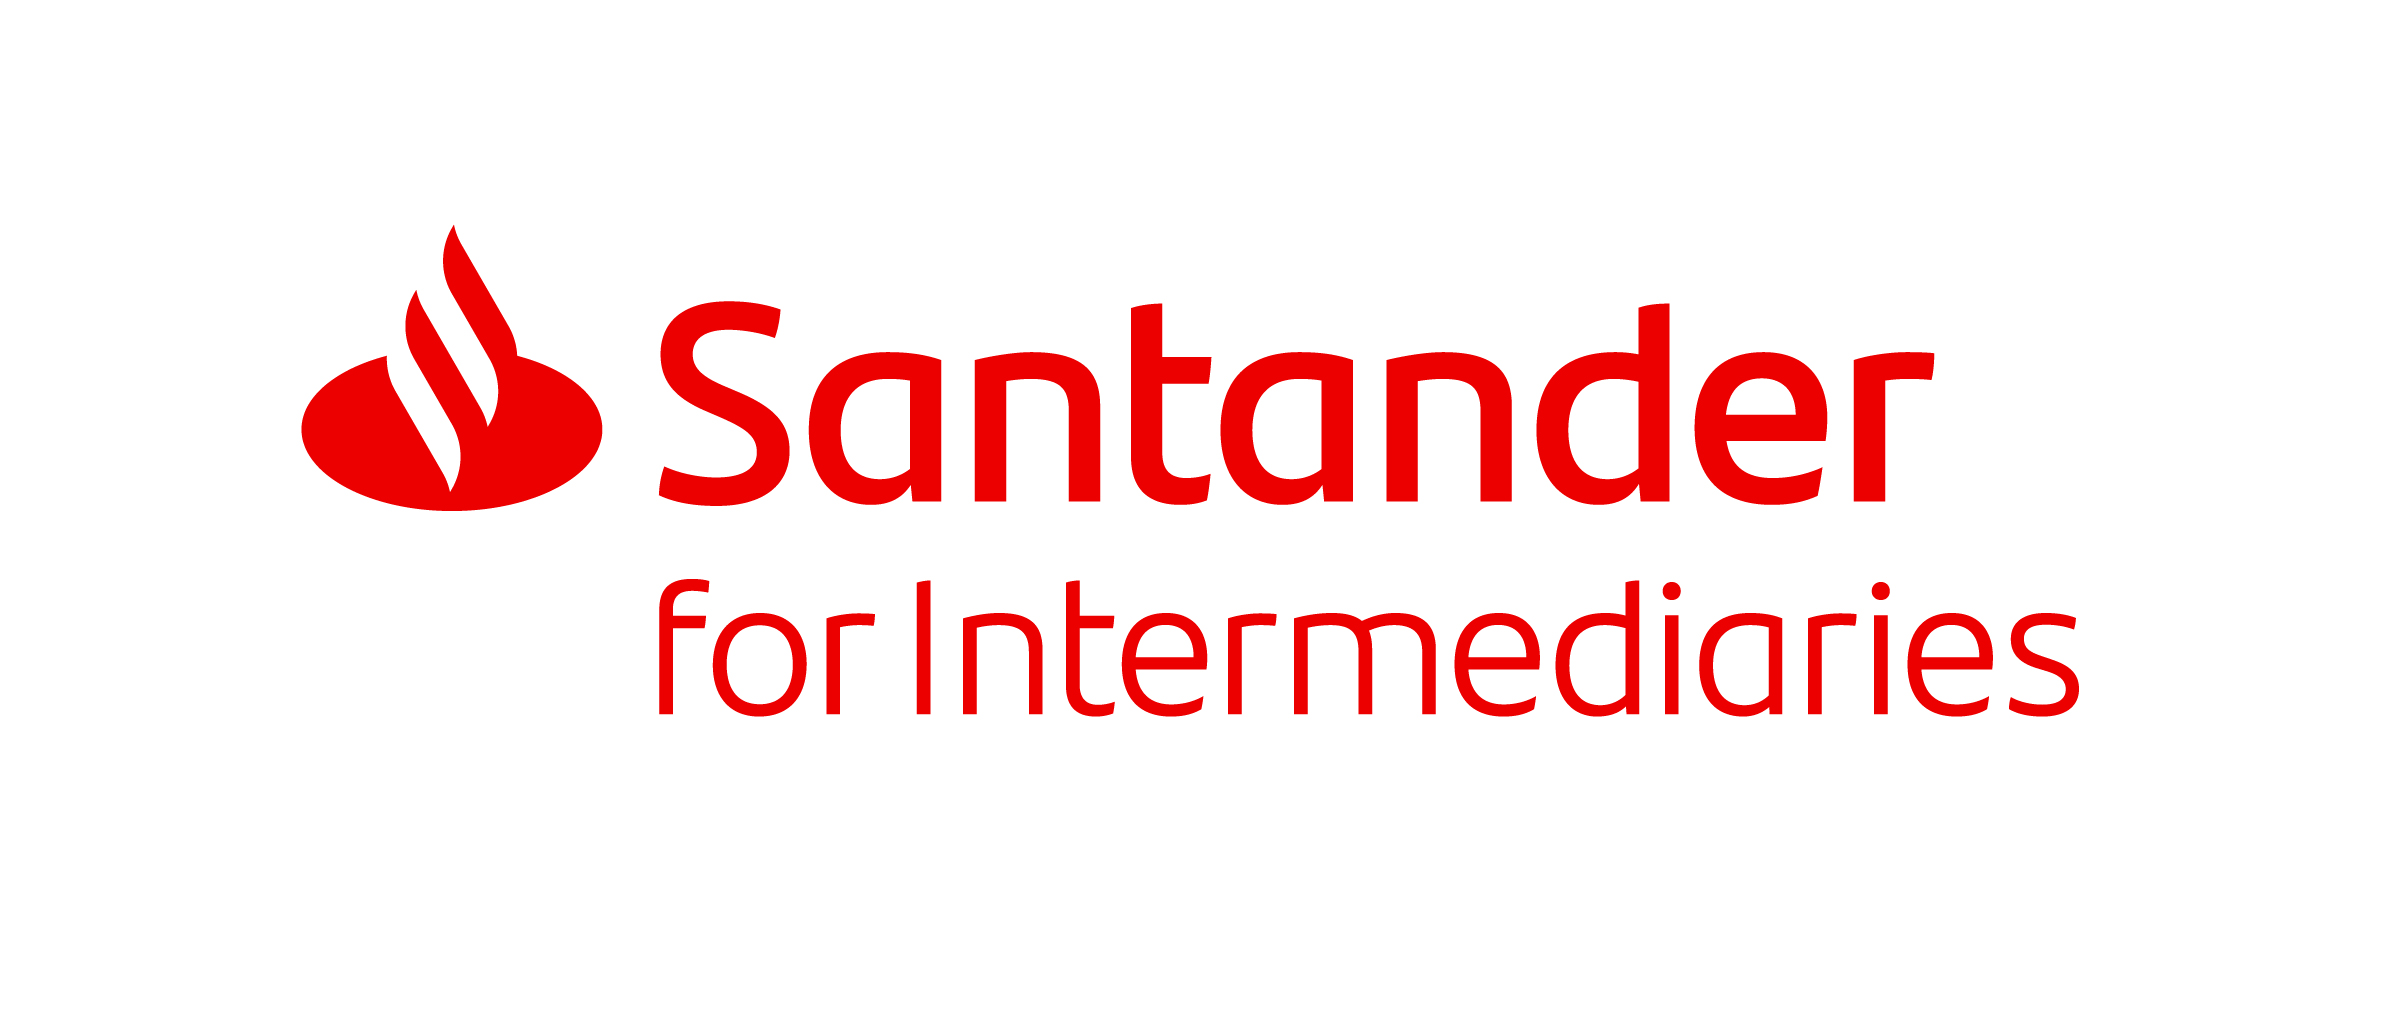 Santander for Intermediaries.